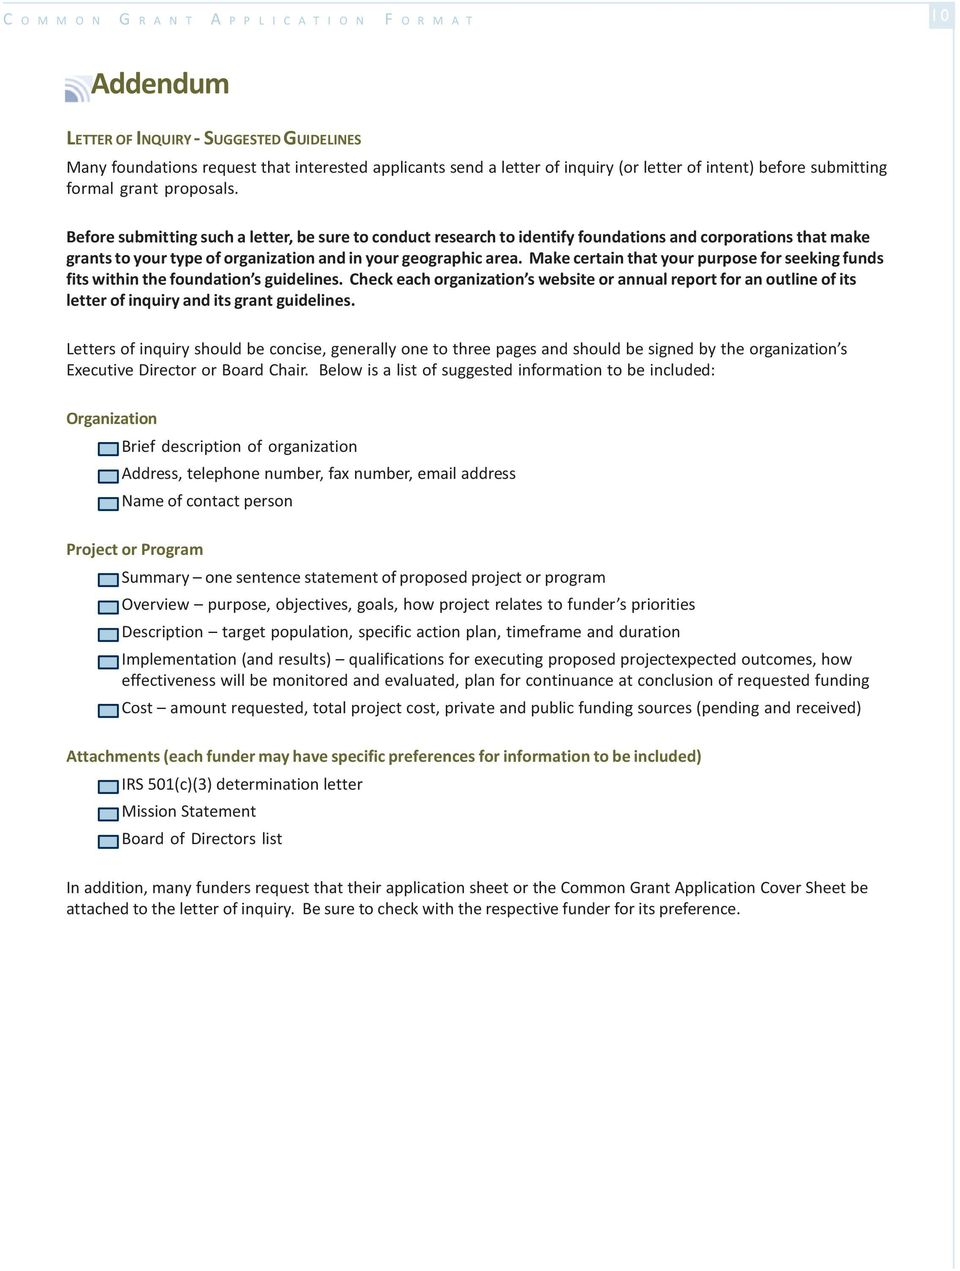 before you begin common grant application format outline common